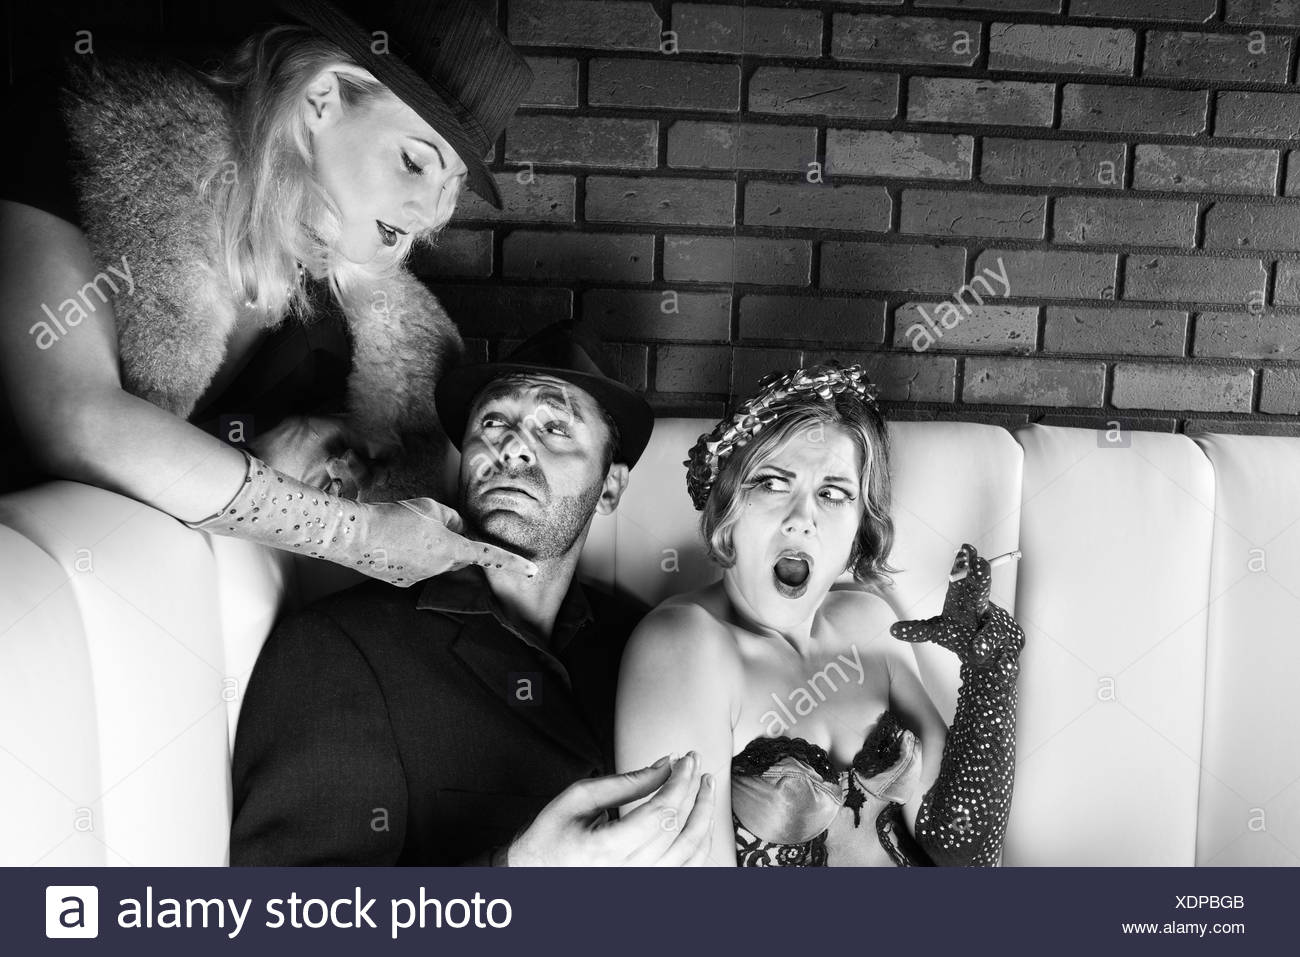 Caucasian prime adult male torn between two Caucasian prime adult females - Stock Image